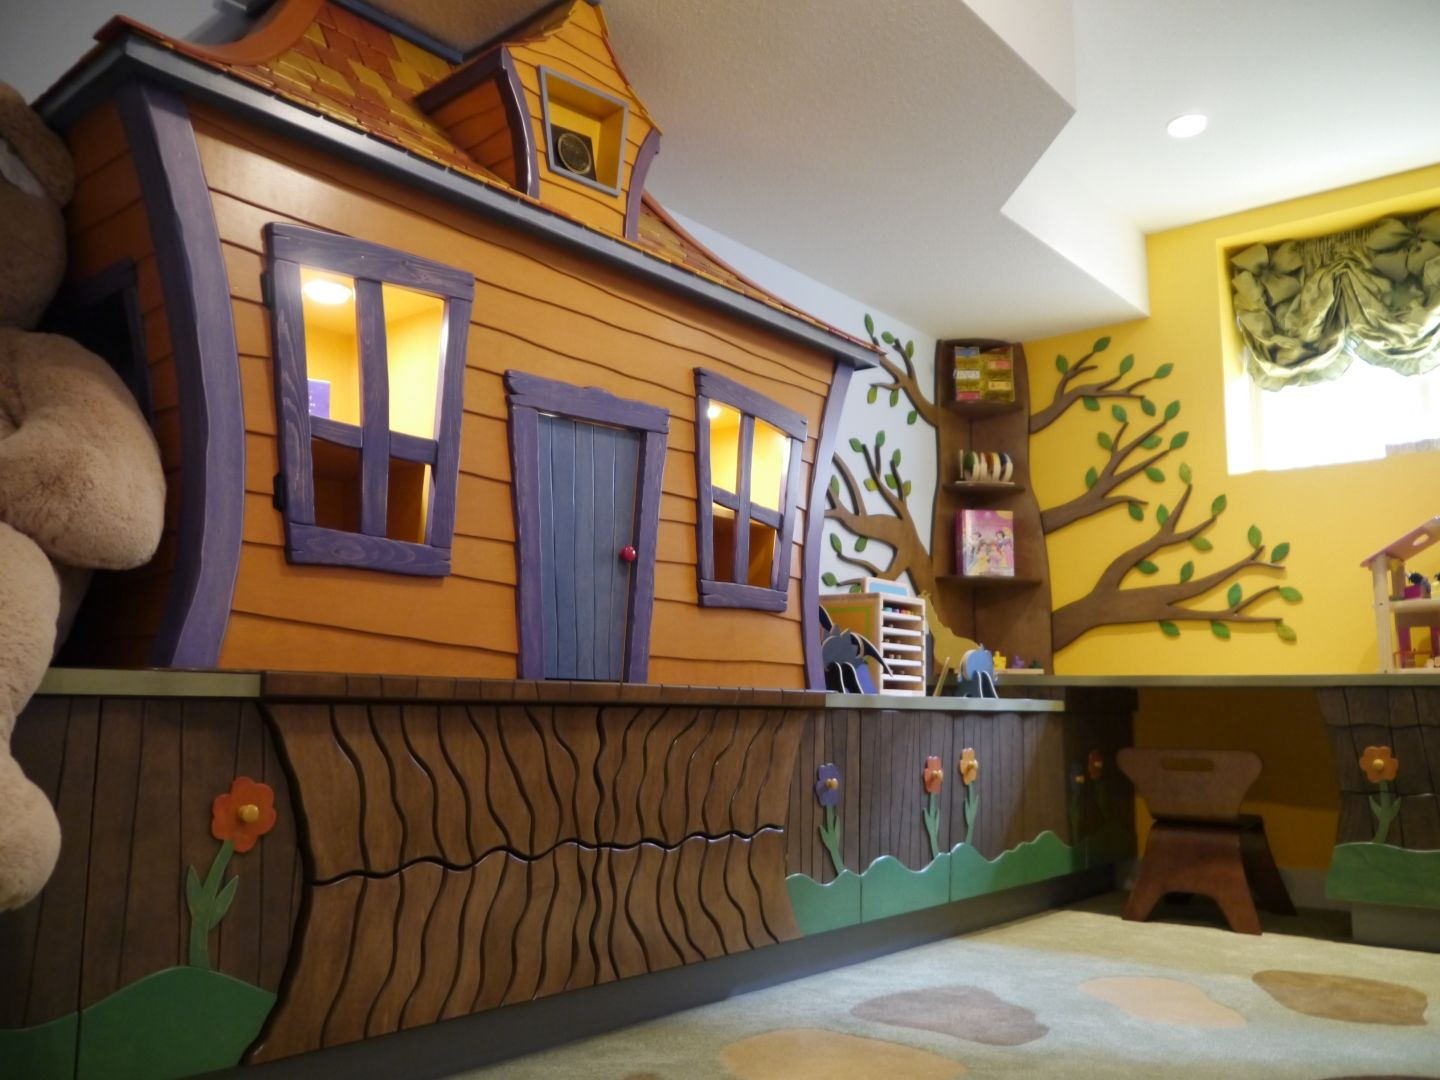 Interior Design Of Kids Playroom Interior Design From Straight Line, And  House Design Kids Playroom Interior Design From Straight Line